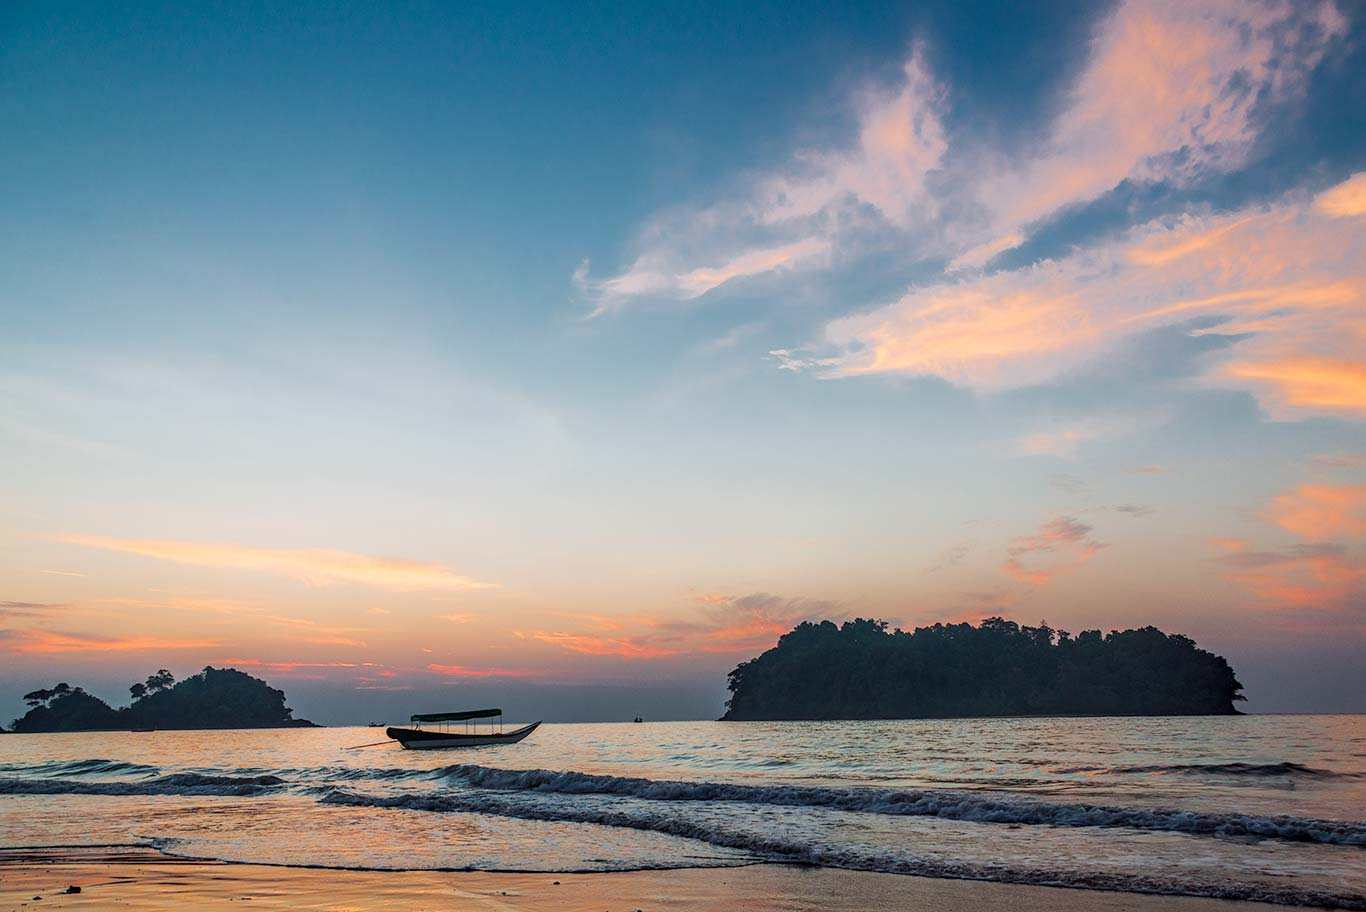 Thailand, Koh Phra Thong, Sunset on the Beach